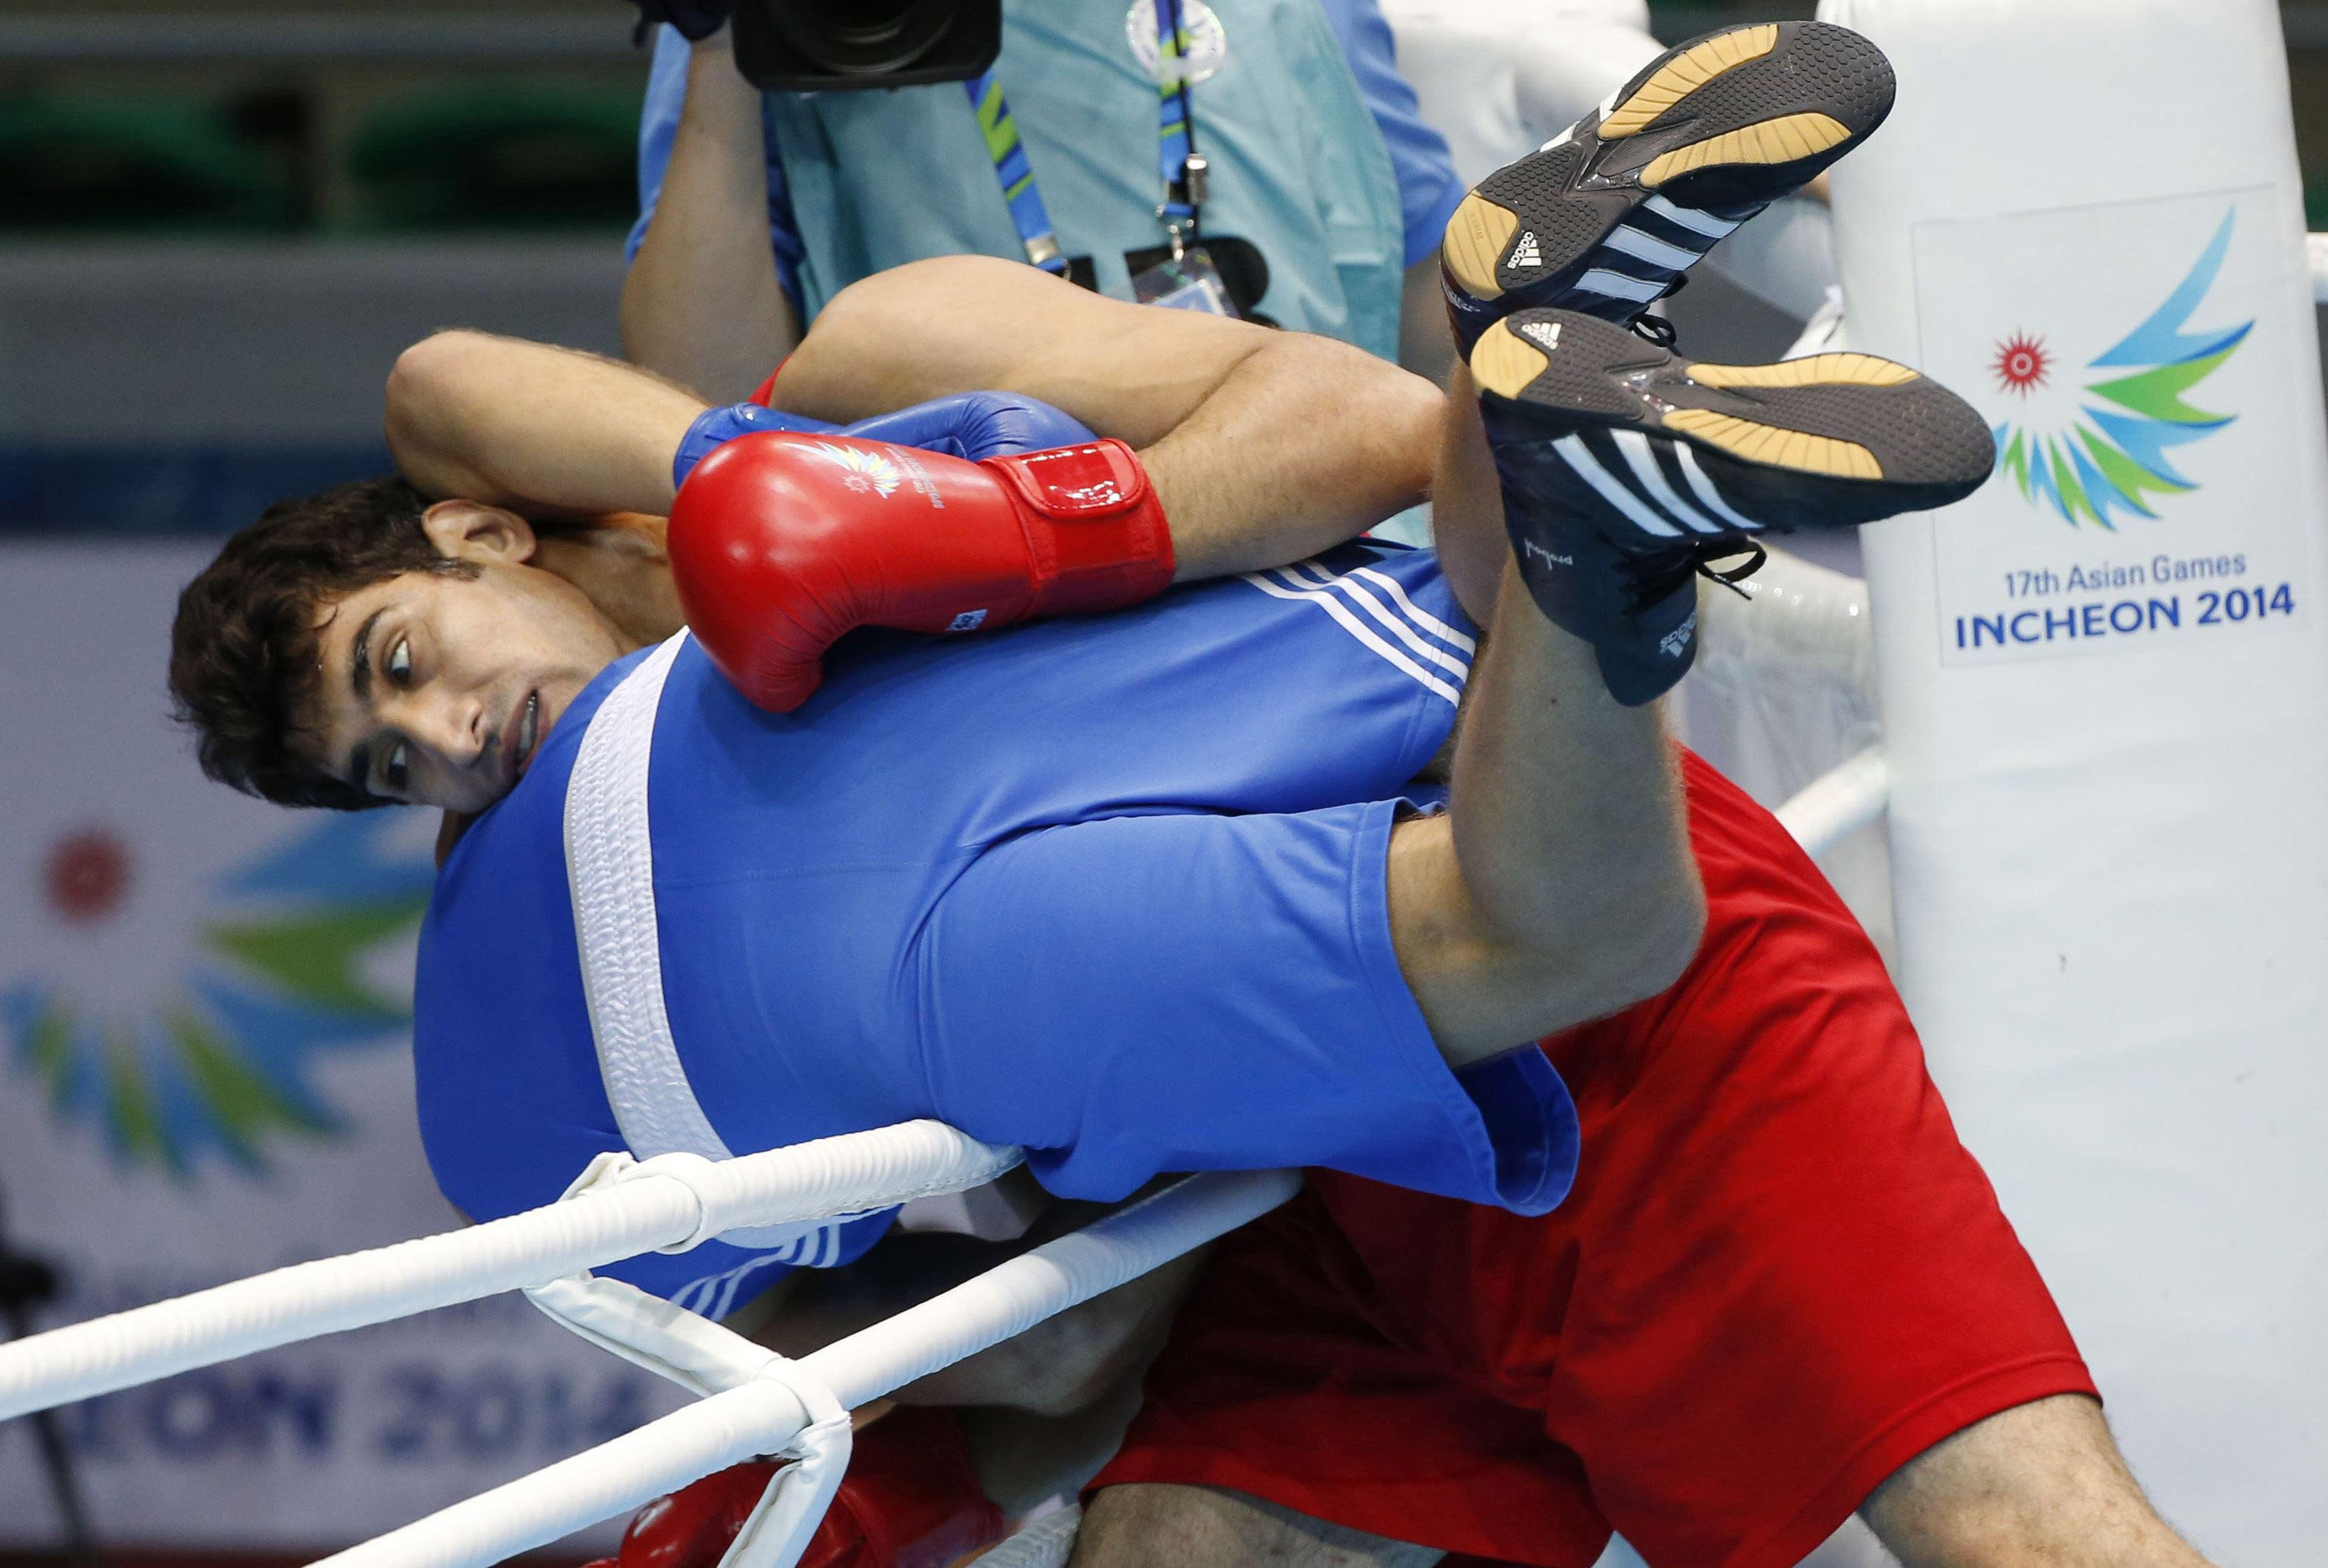 Kazakhstan's Anton Pinchuk is almost lifted out of the ring by Iran's Ali Mazaheri during their men's gold medal heavyweight 91kg boxing match at the Seonhak Gymnasium during the 2014 Asian Games in Incheon